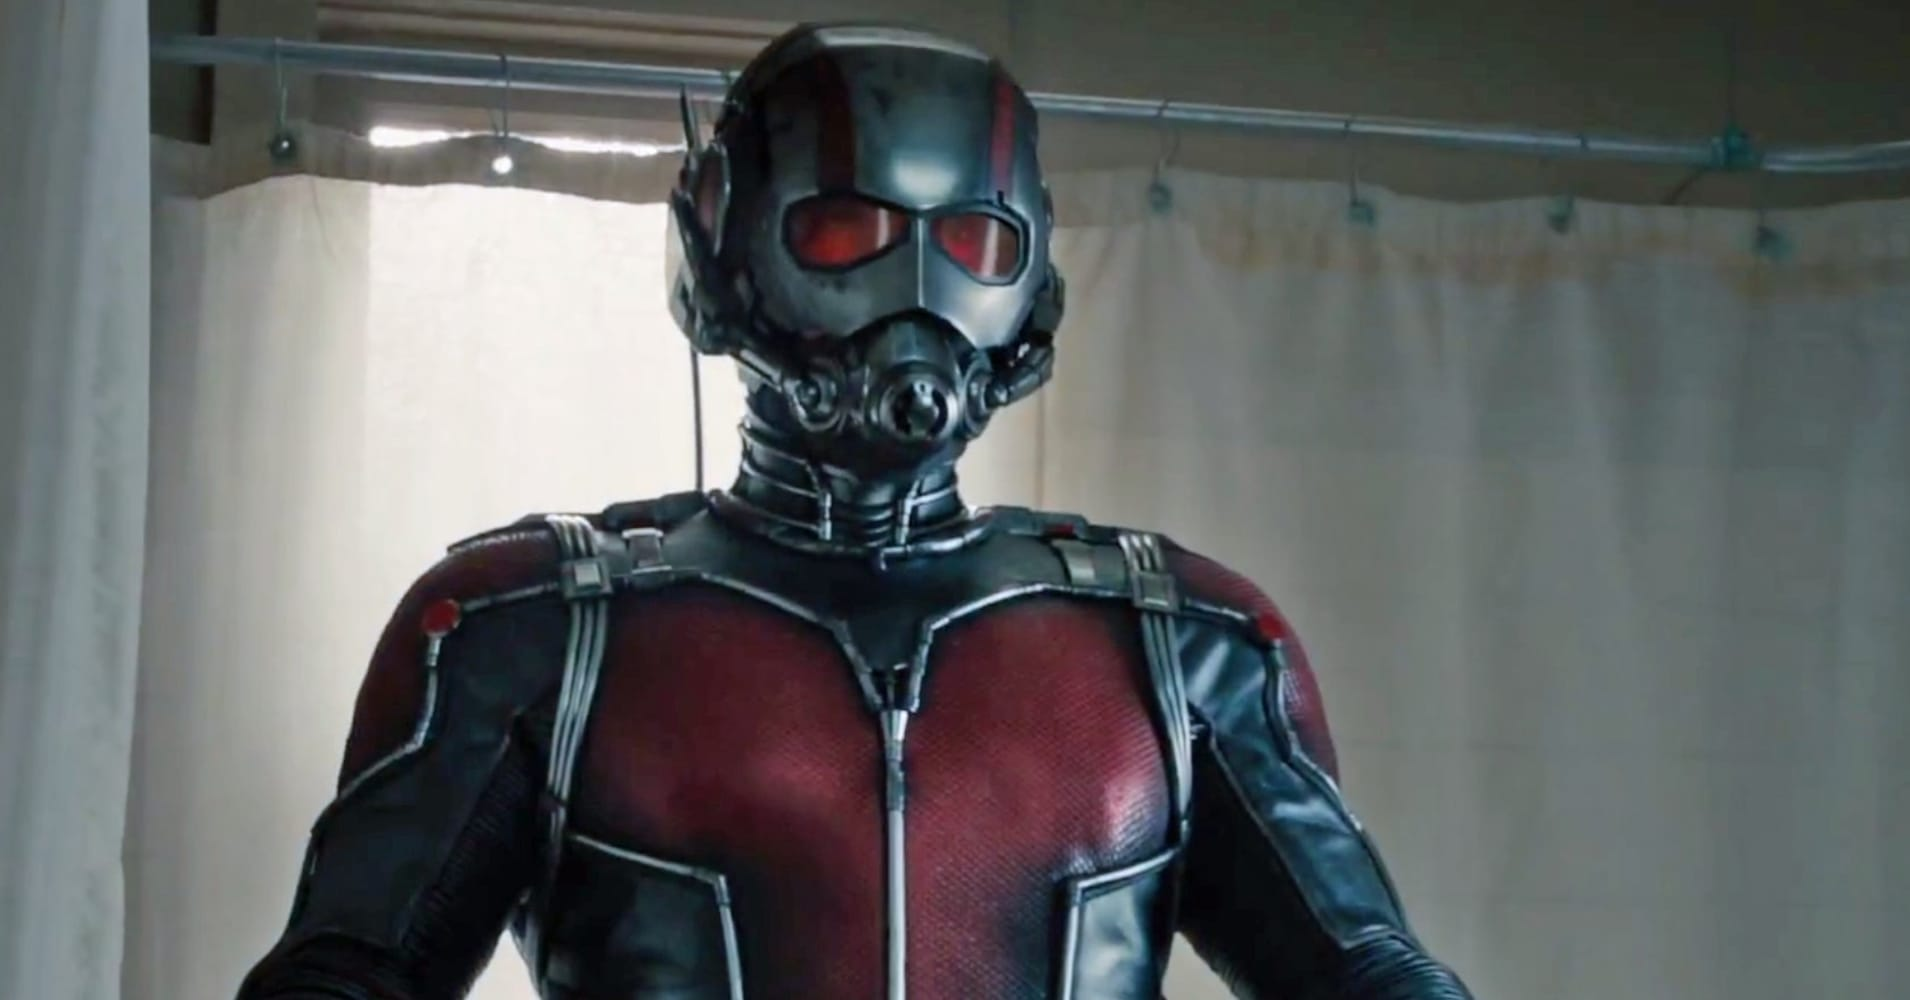 Marvel expands movie slate with ant man sequel in 2018 biocorpaavc